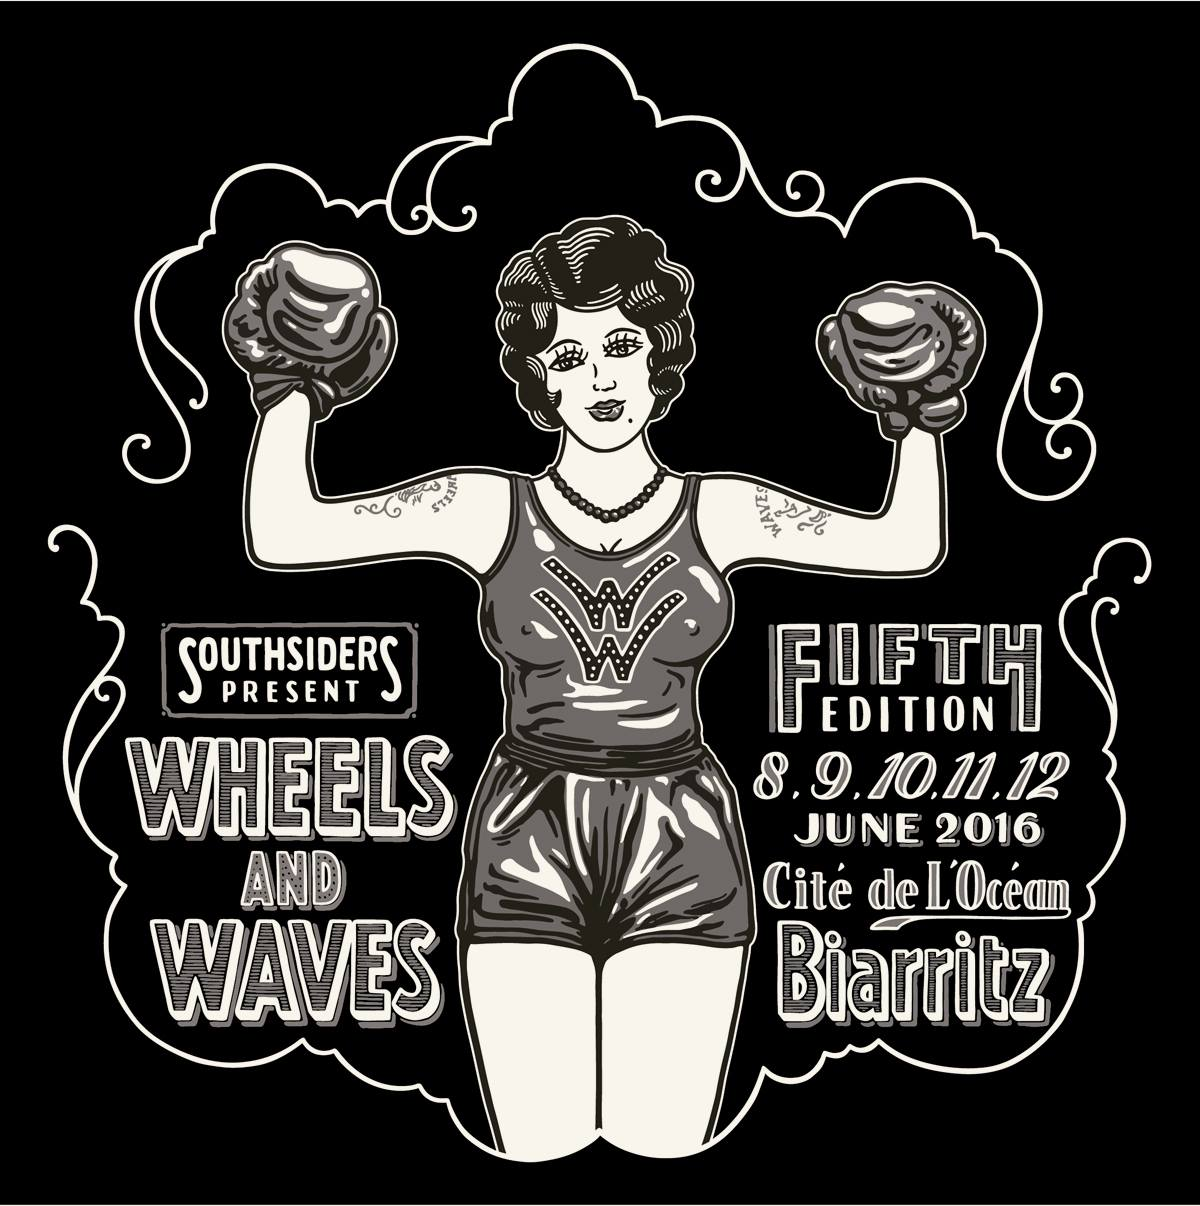 Wheels & waves 2016 poster